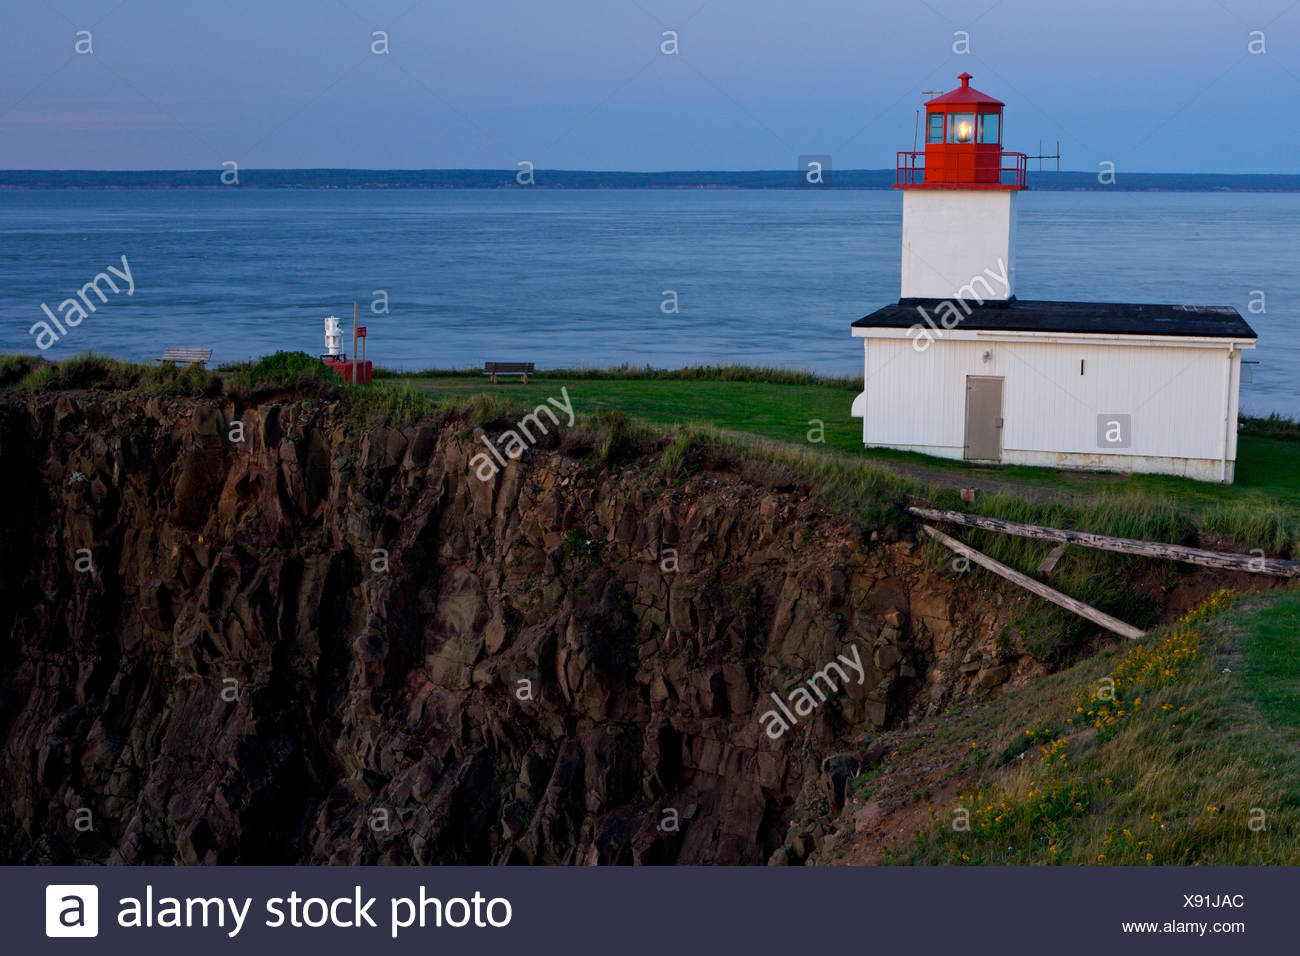 Cape d'Or Lighthouse at blue hour, Cape d'Or, Cape Chignecto, Bay of Fundy, Fundy Shore Ecotour, Glooscap Trail, Highway 209, Mi - Stock Image